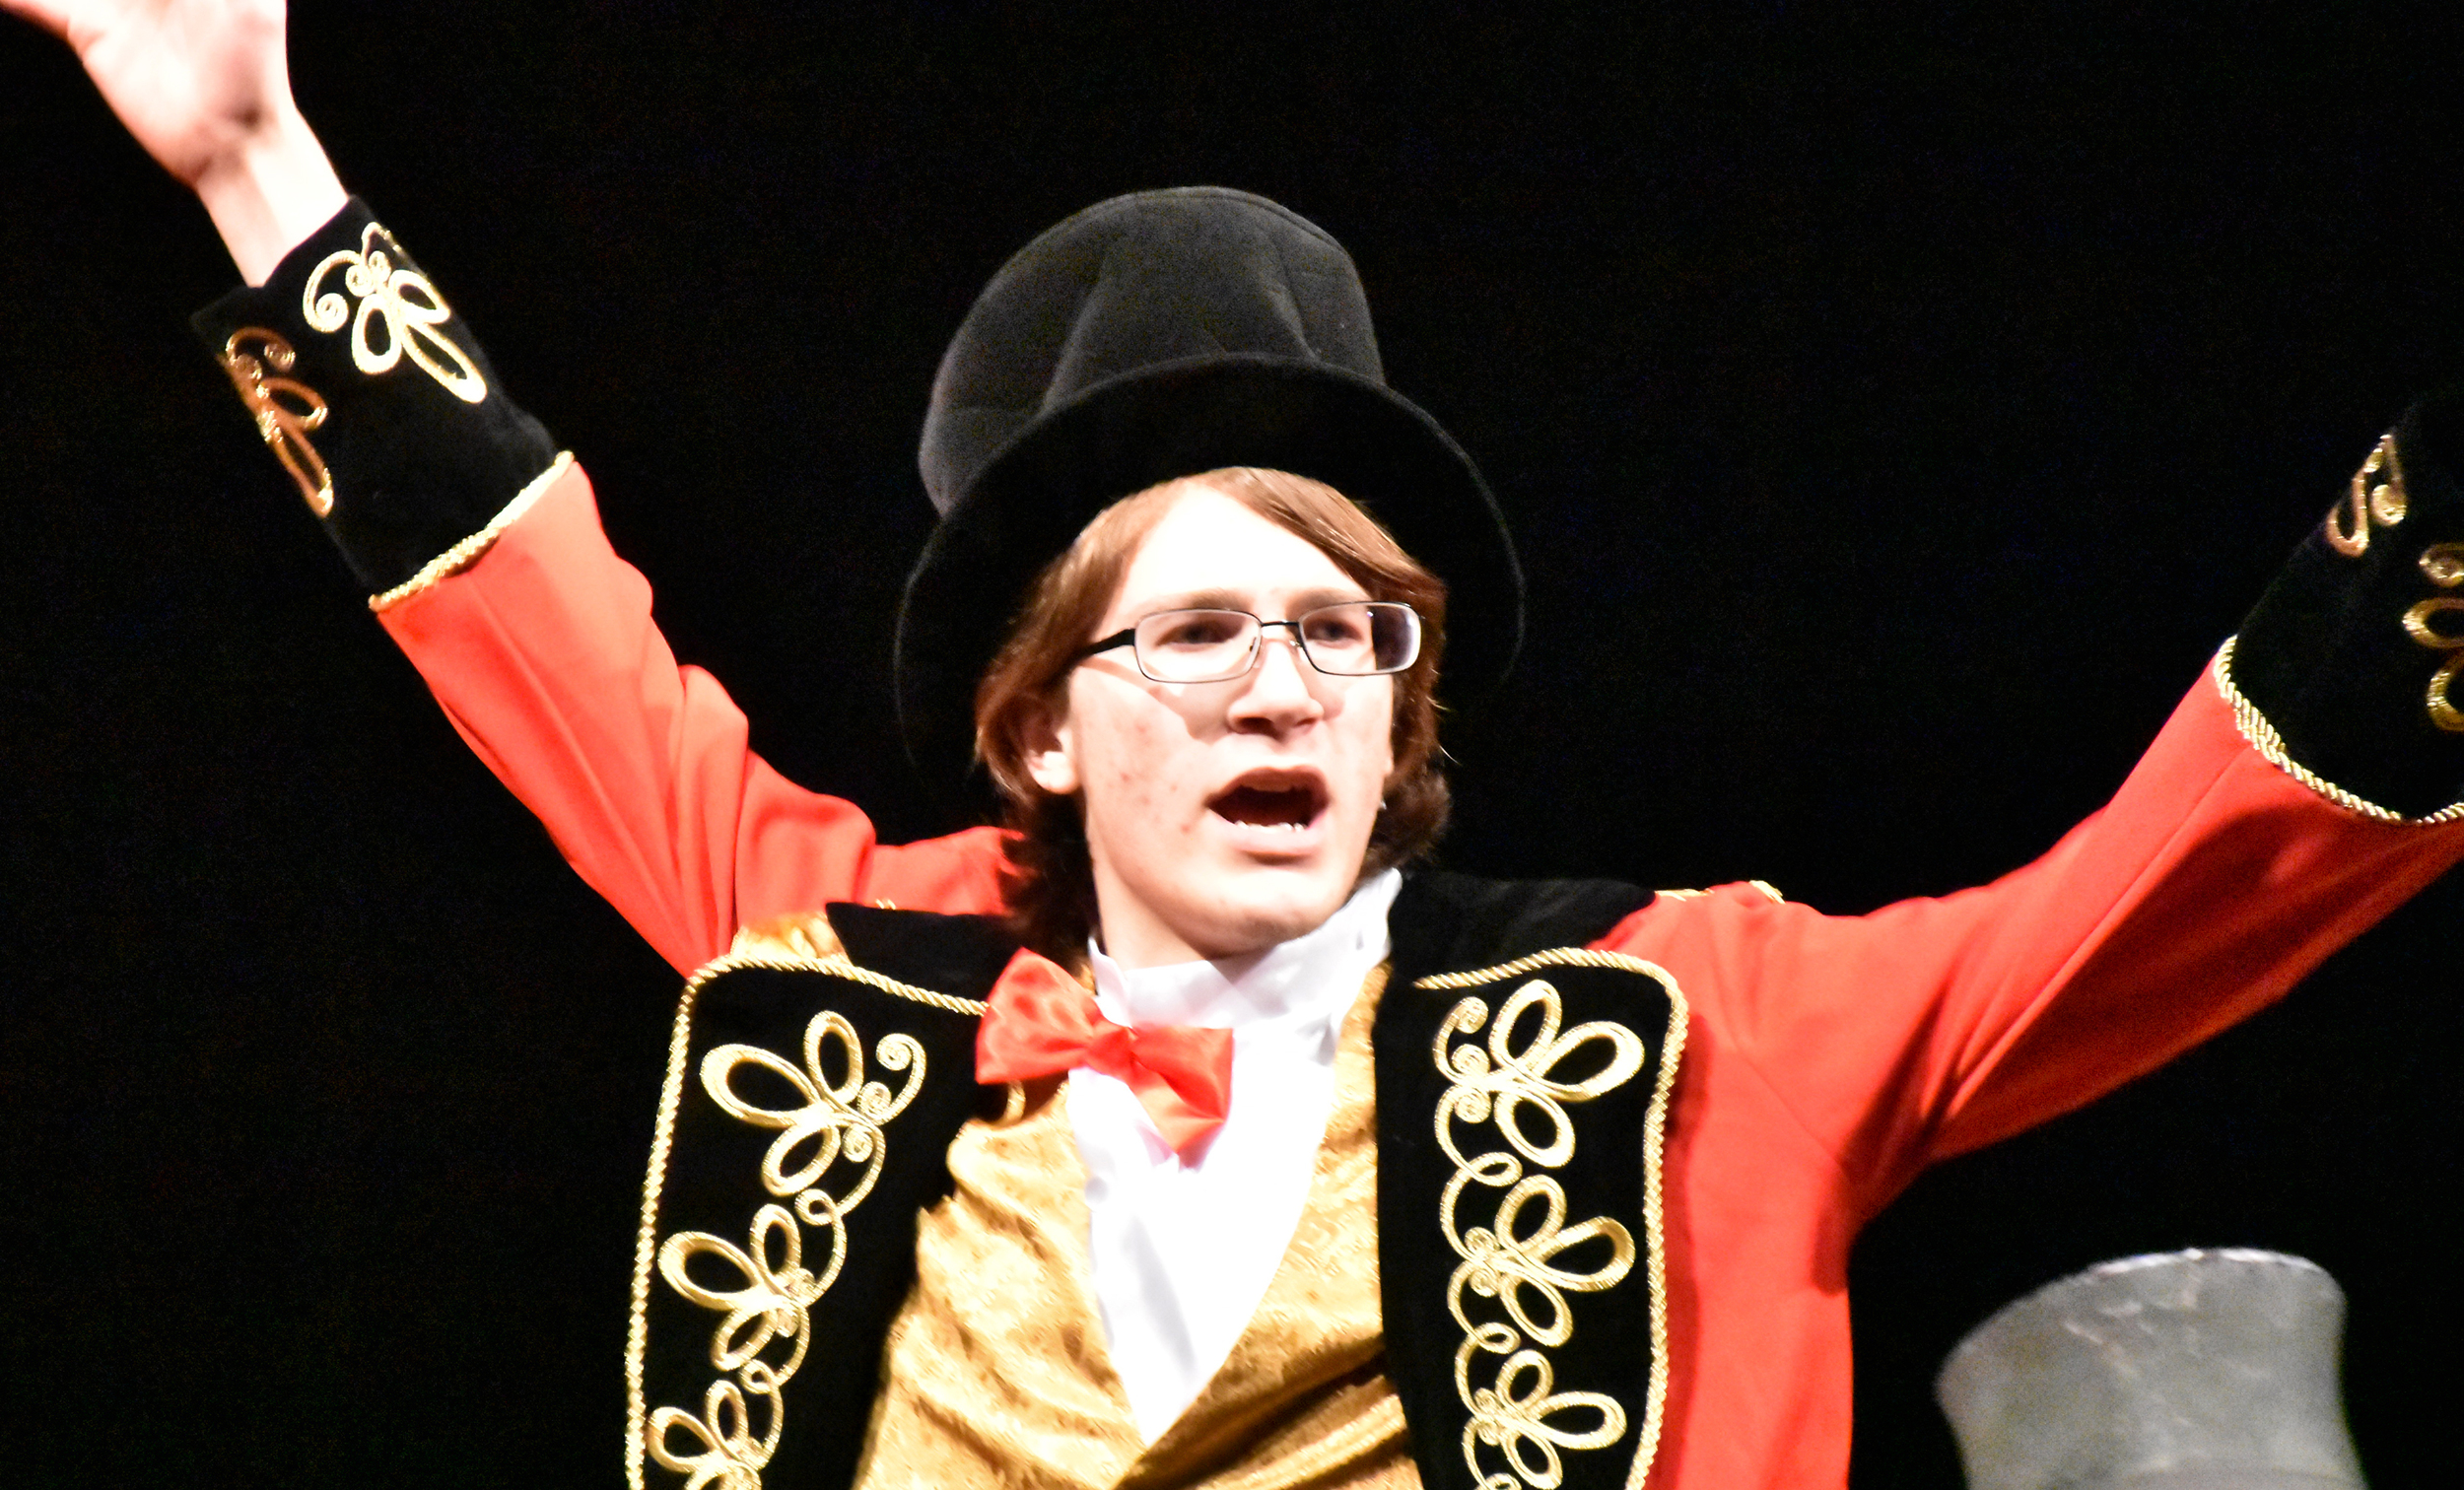 Stephen Spilman portrays Burnum, he ringmaster and owner of Burnum and Bailout Traveling Circus, who's something of a con man too.